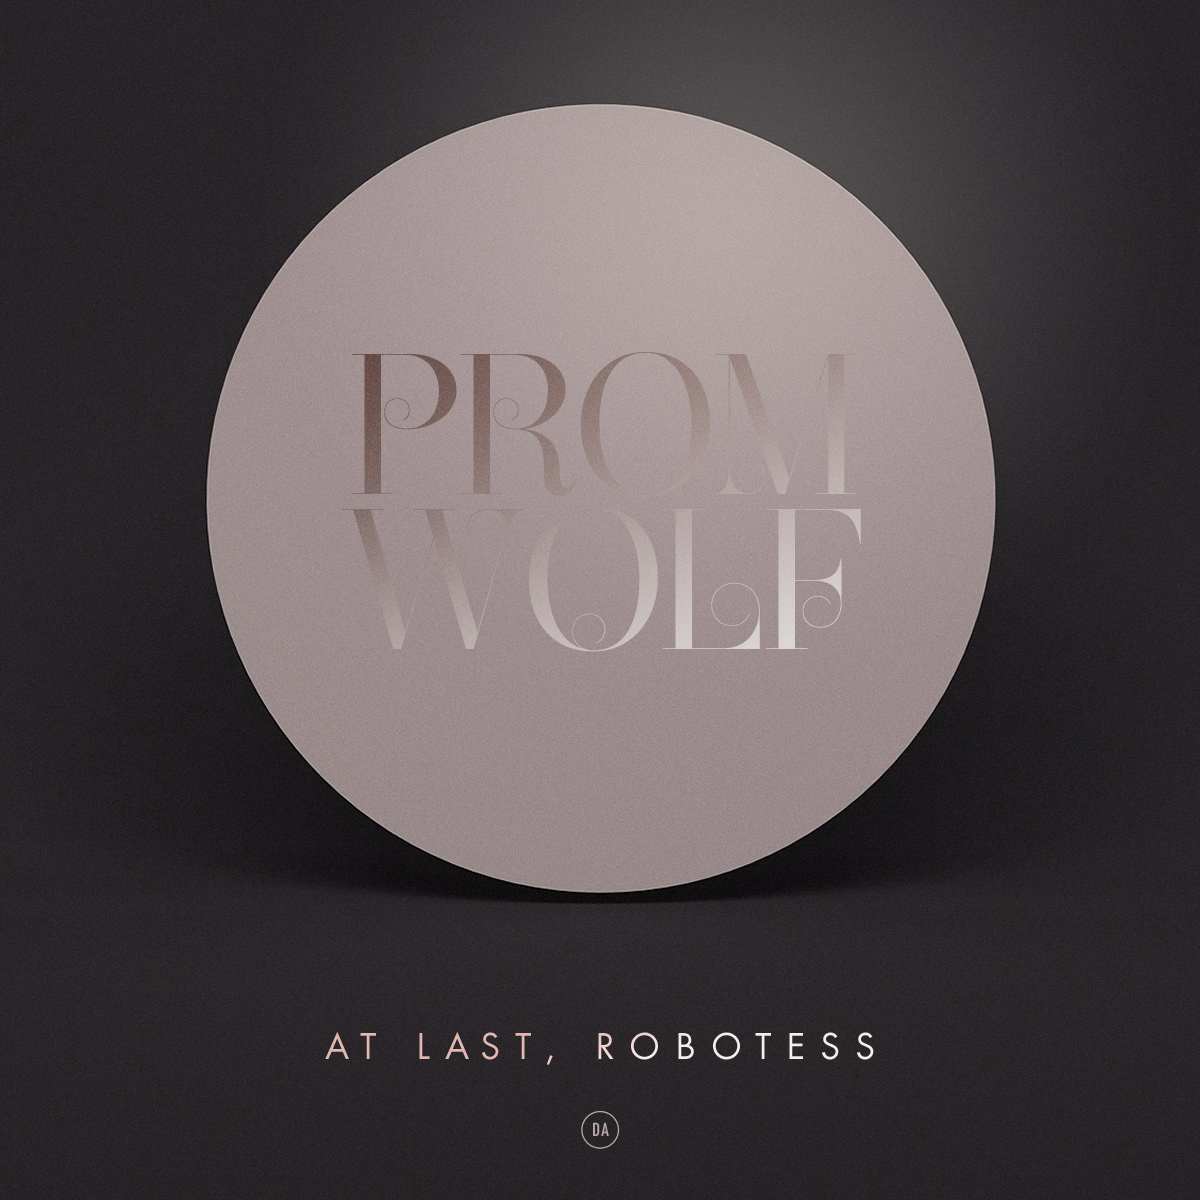 Promwolf — At last, Robotess